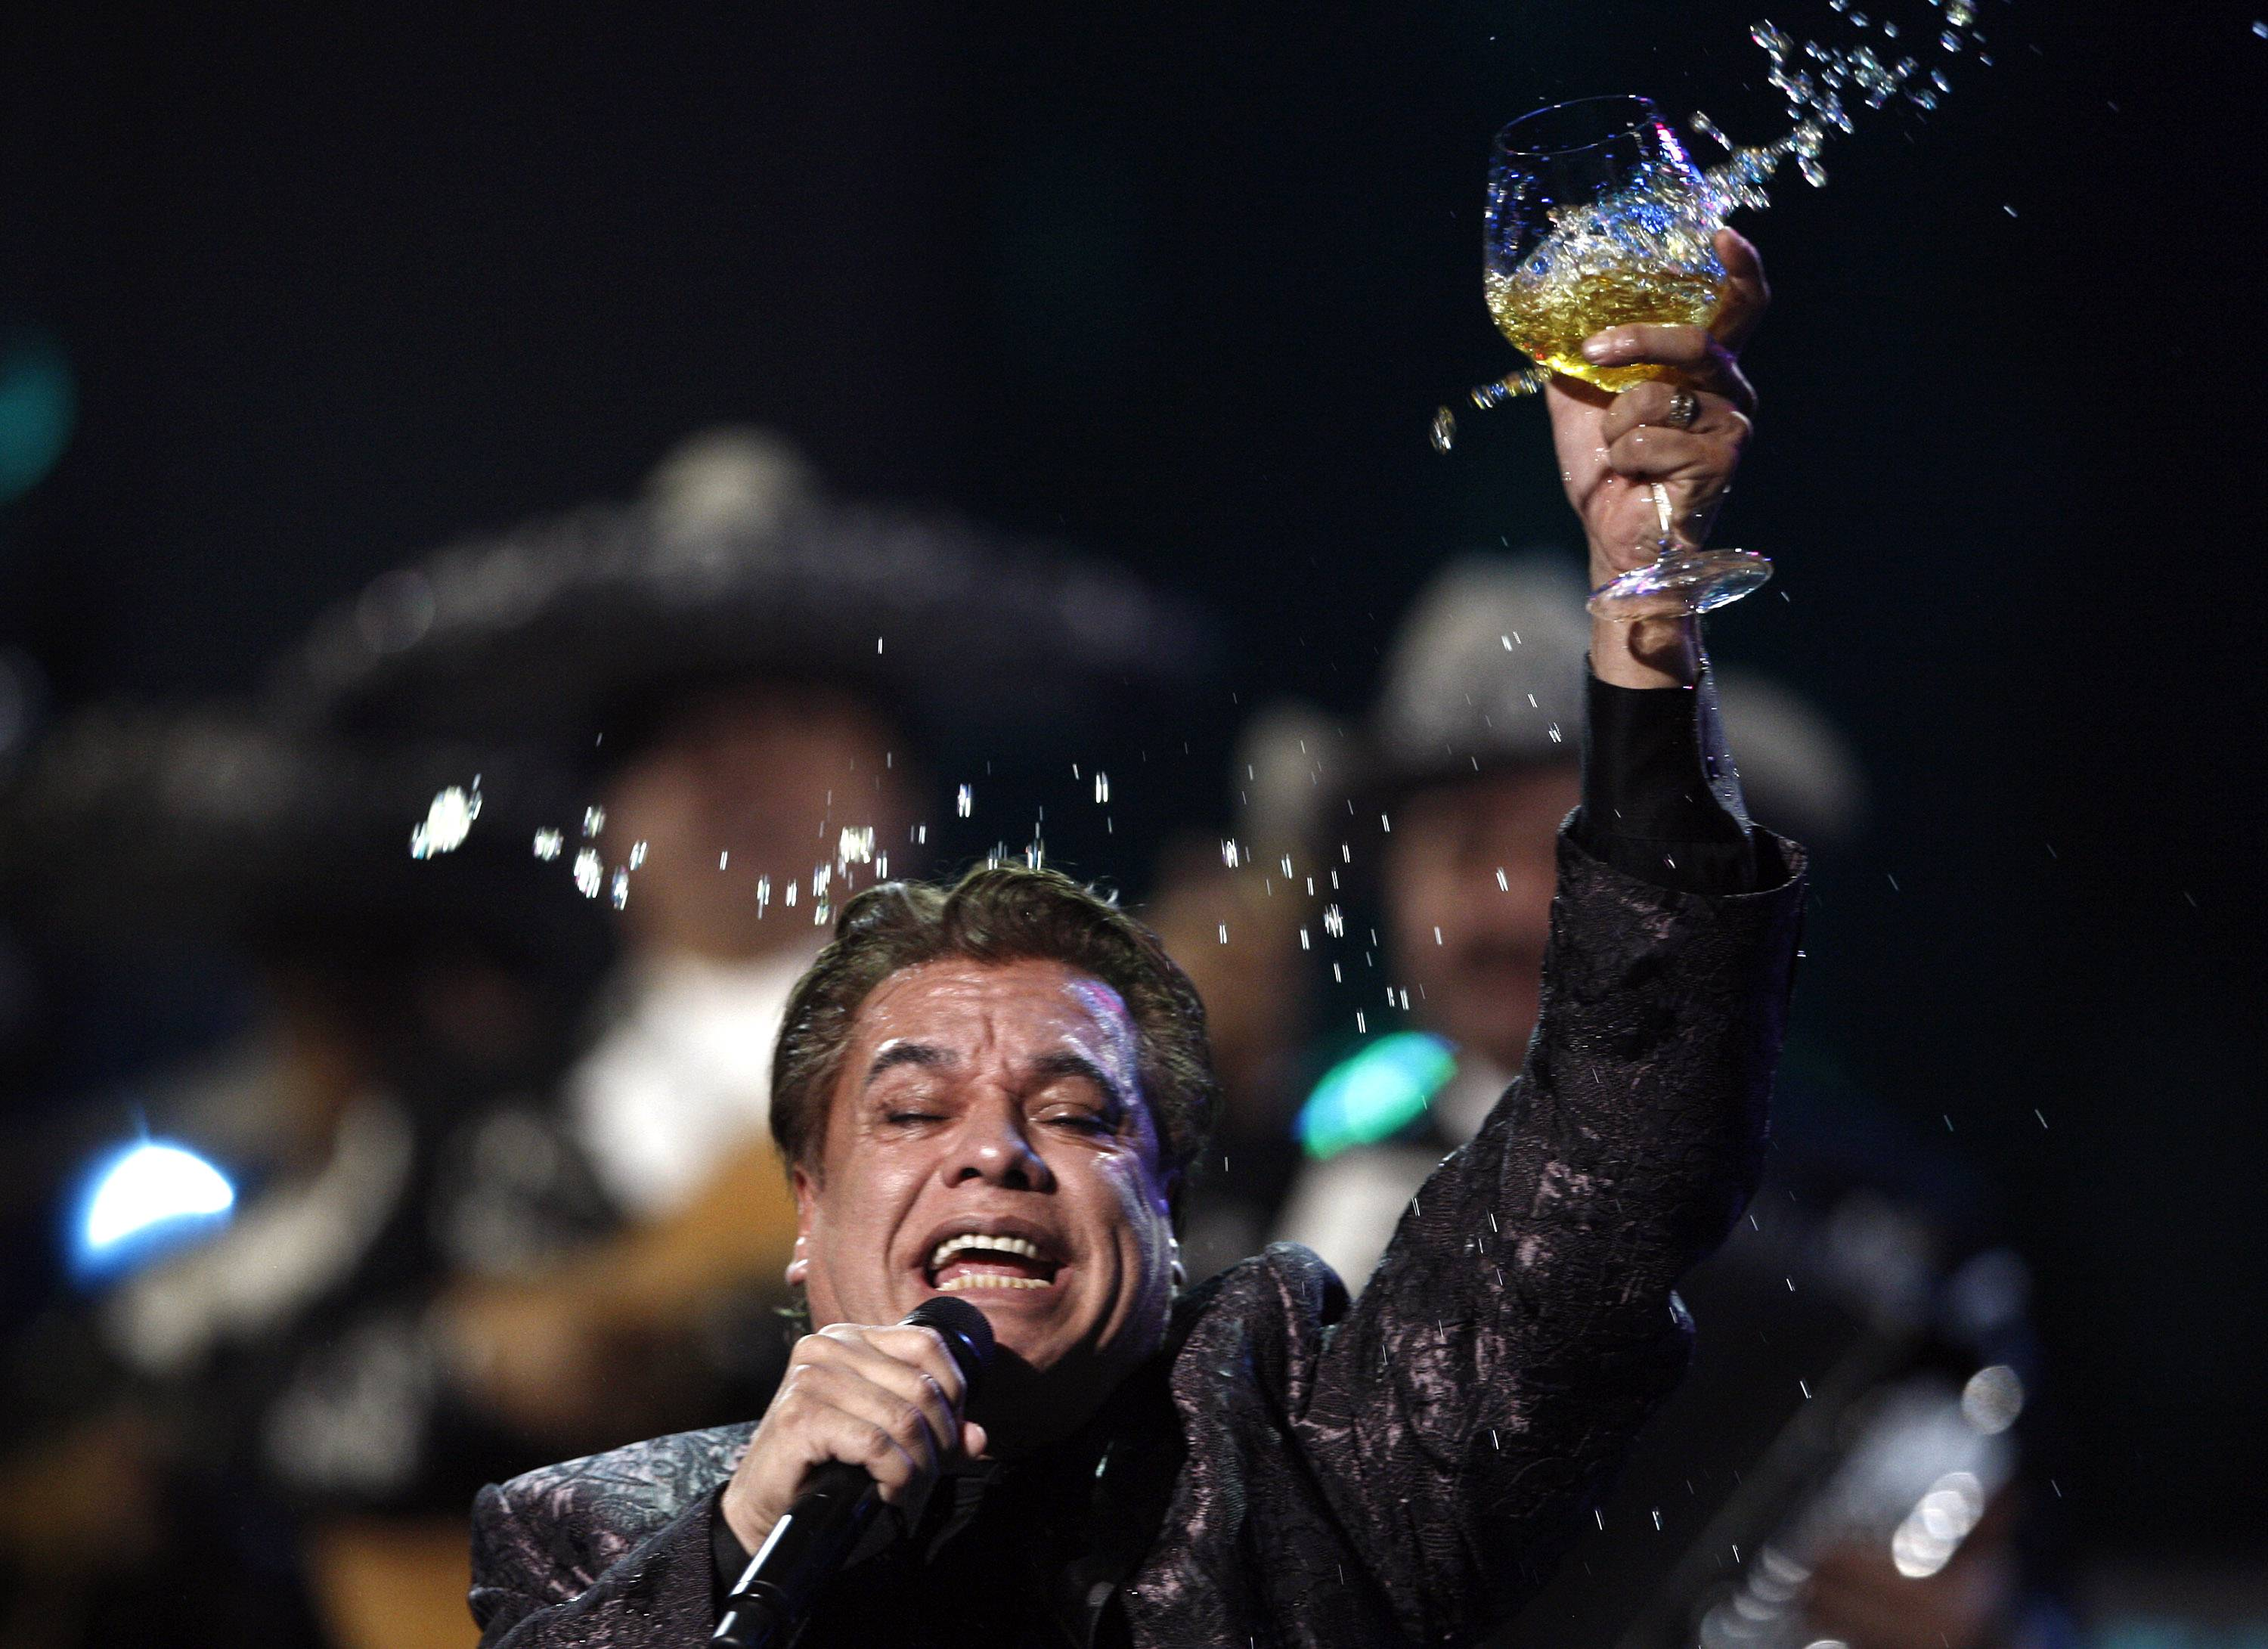 Juan Gabriel performs at the 10th Annual Latin Grammy Awards in November 2009 in Las Vegas. Representatives of Juan Gabriel reported that he died Sunday.